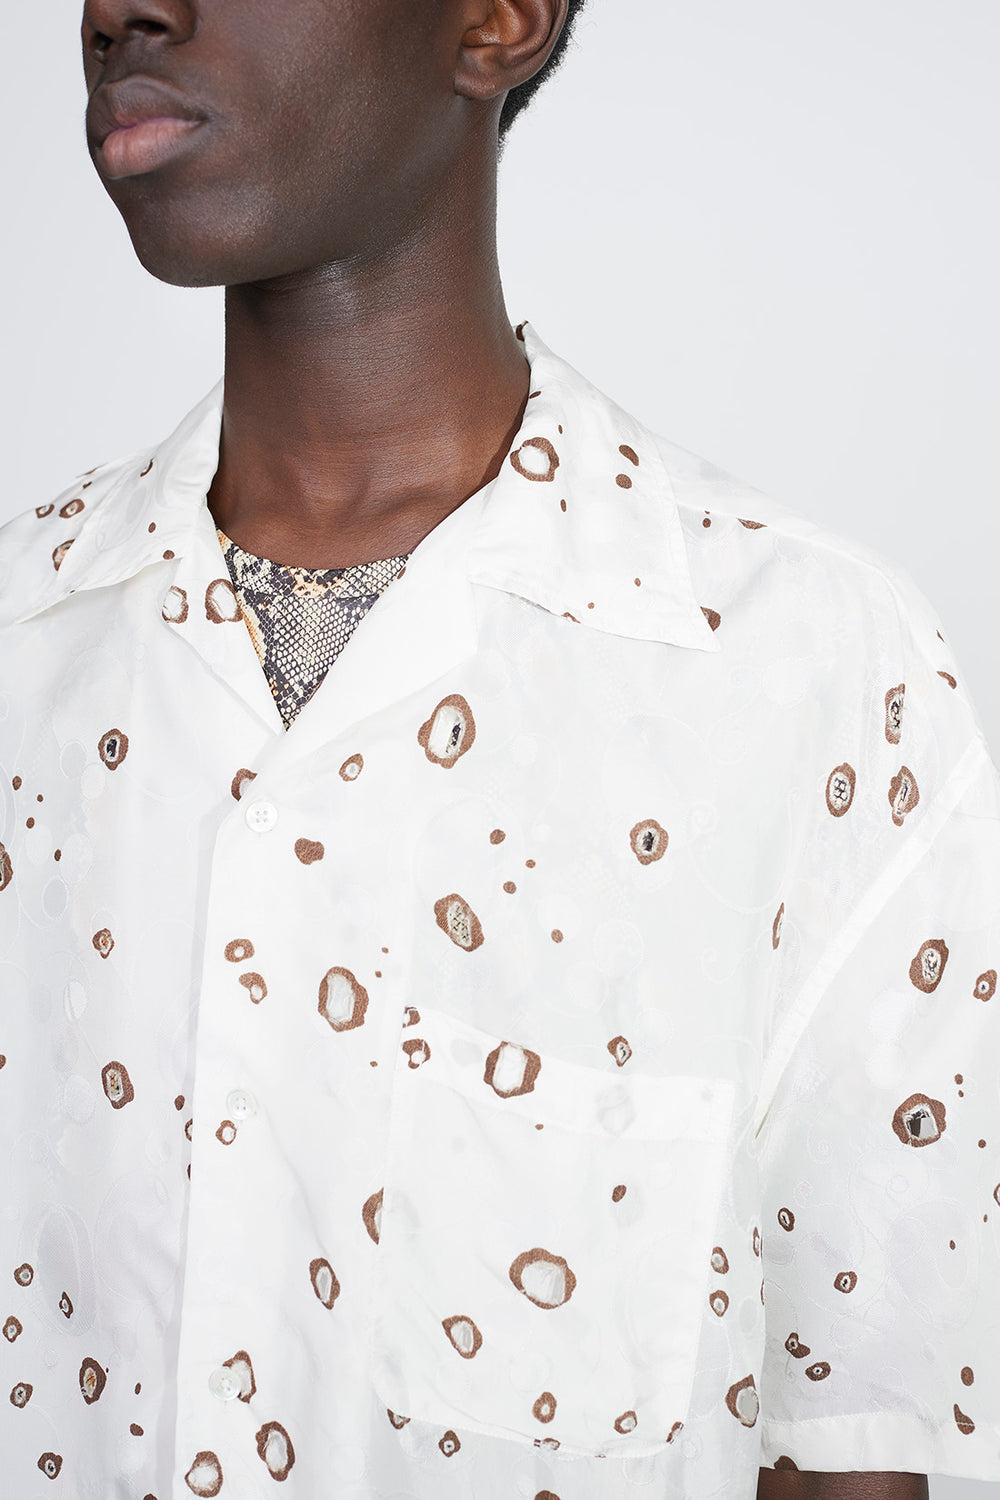 Kim jacquard shirt white/brown